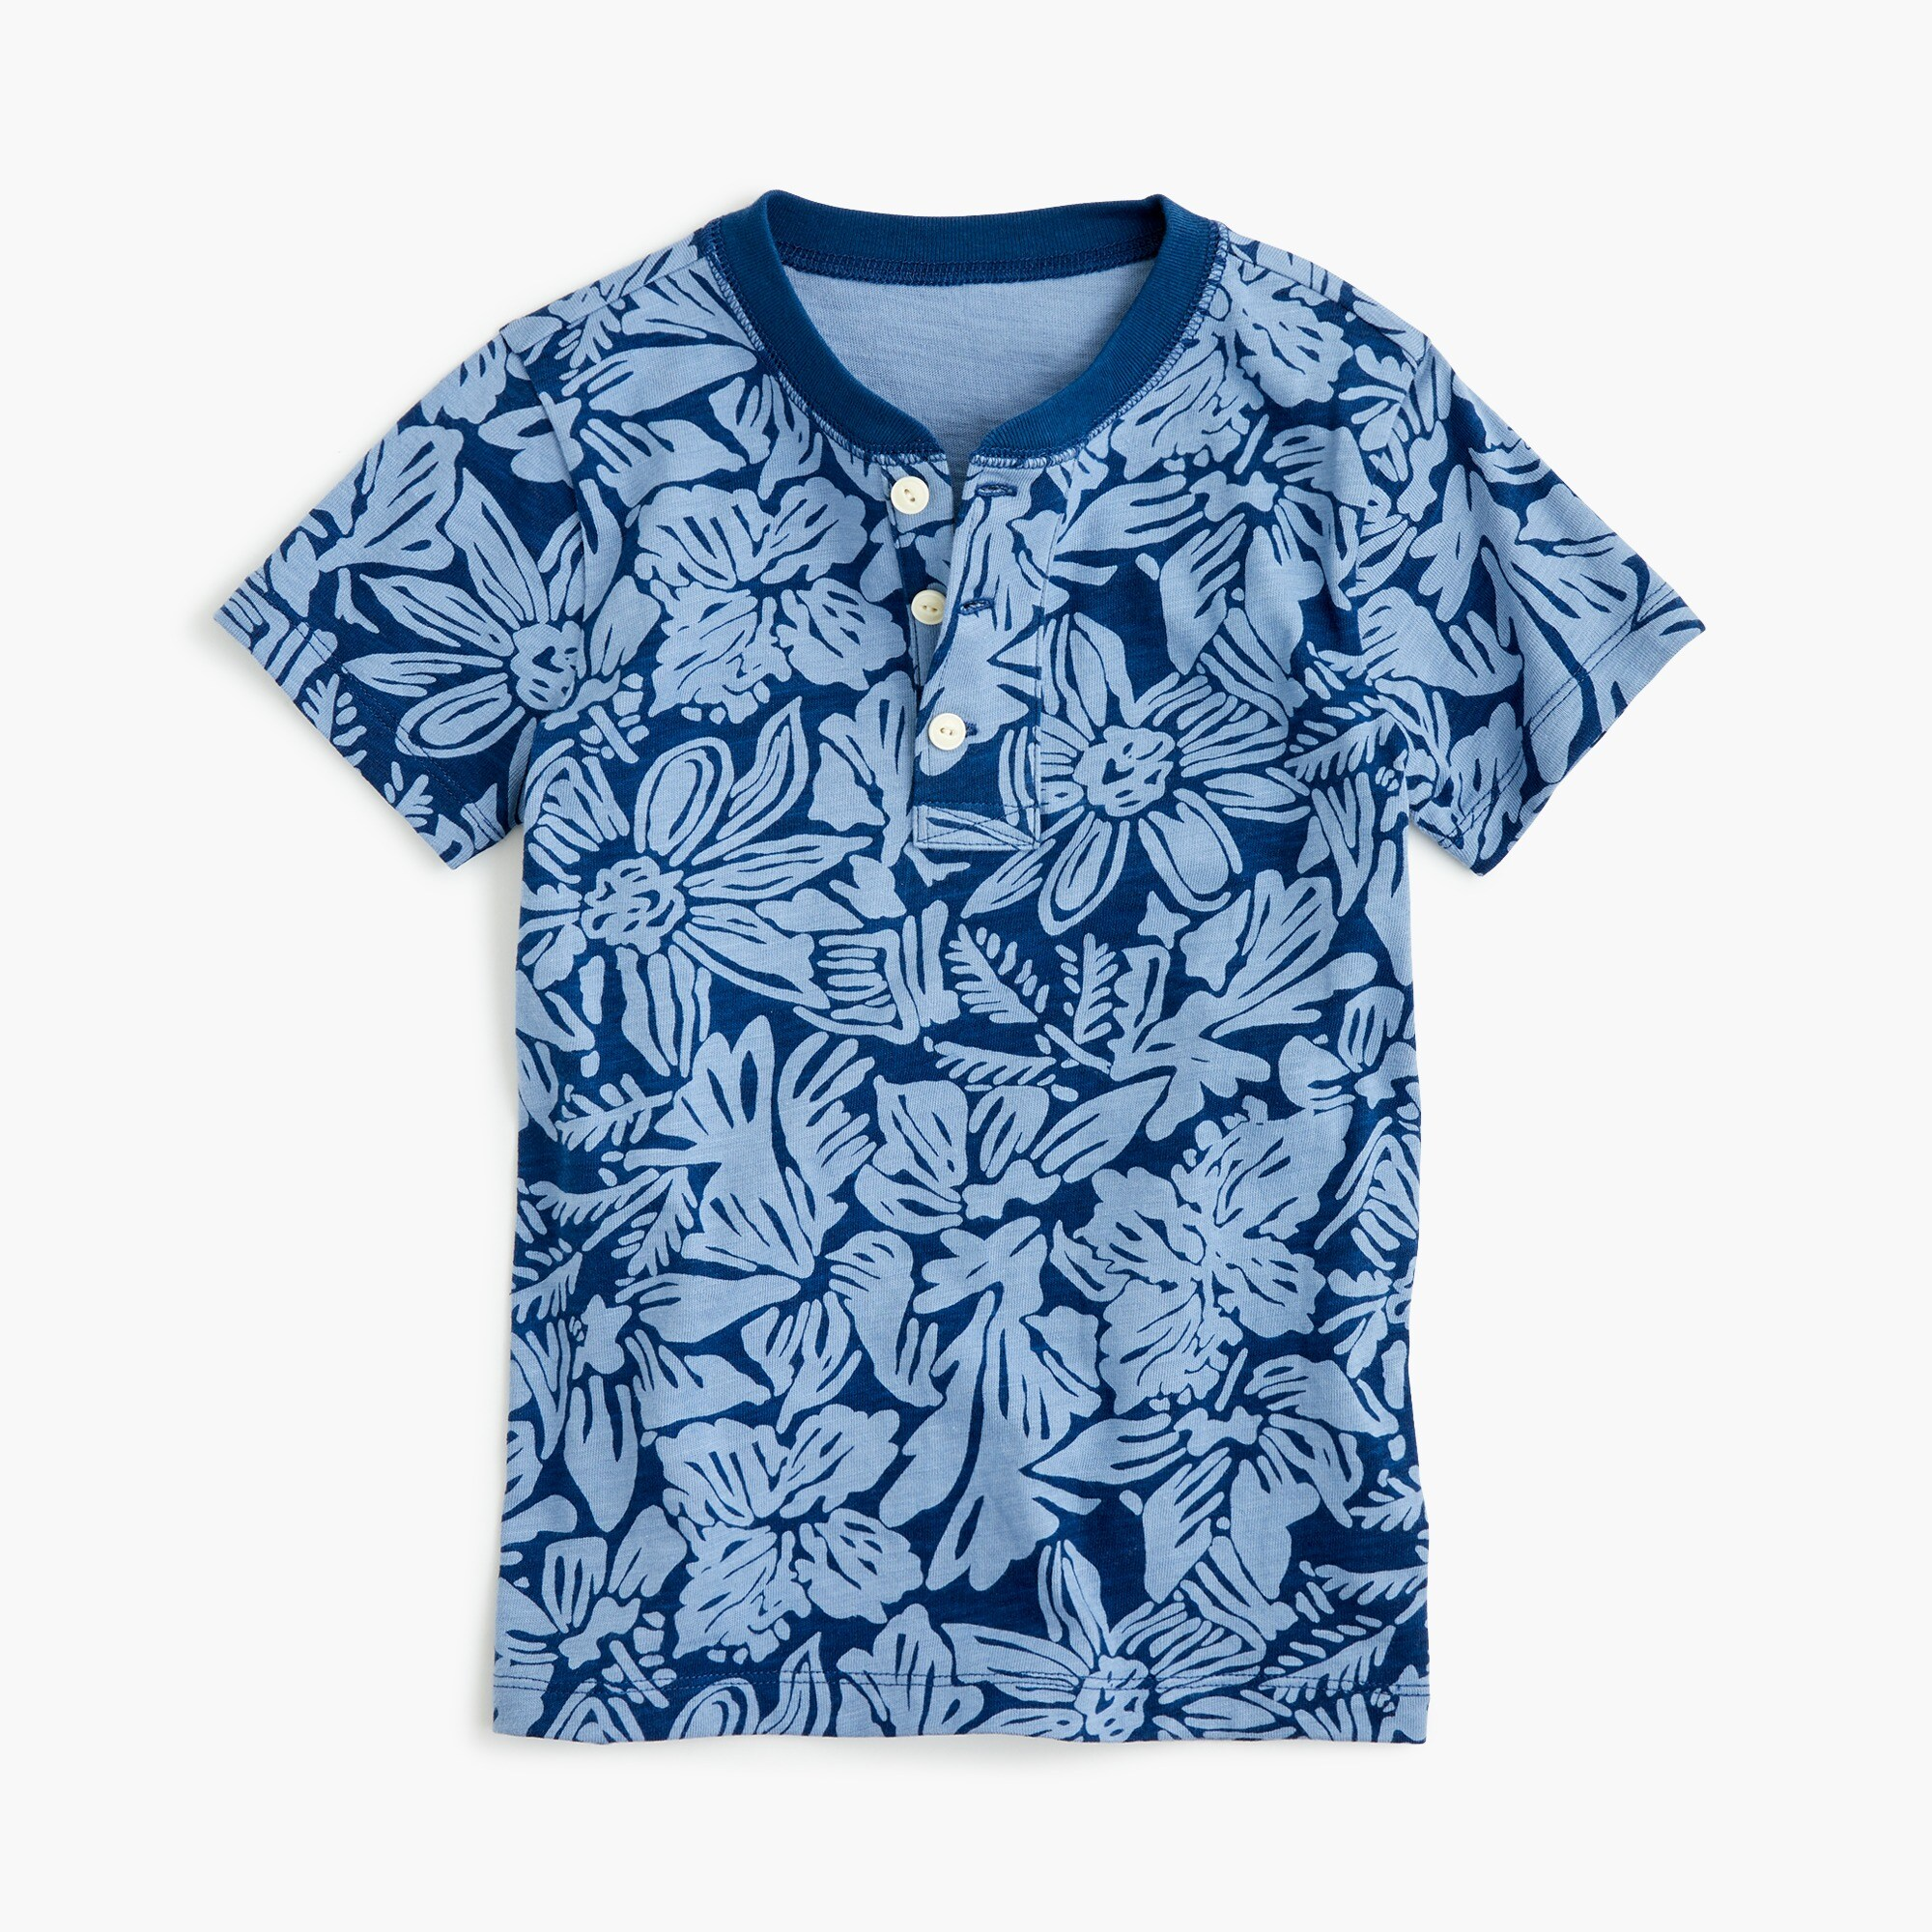 Boys' short-sleeve henley shirt in tropical print boy new arrivals c